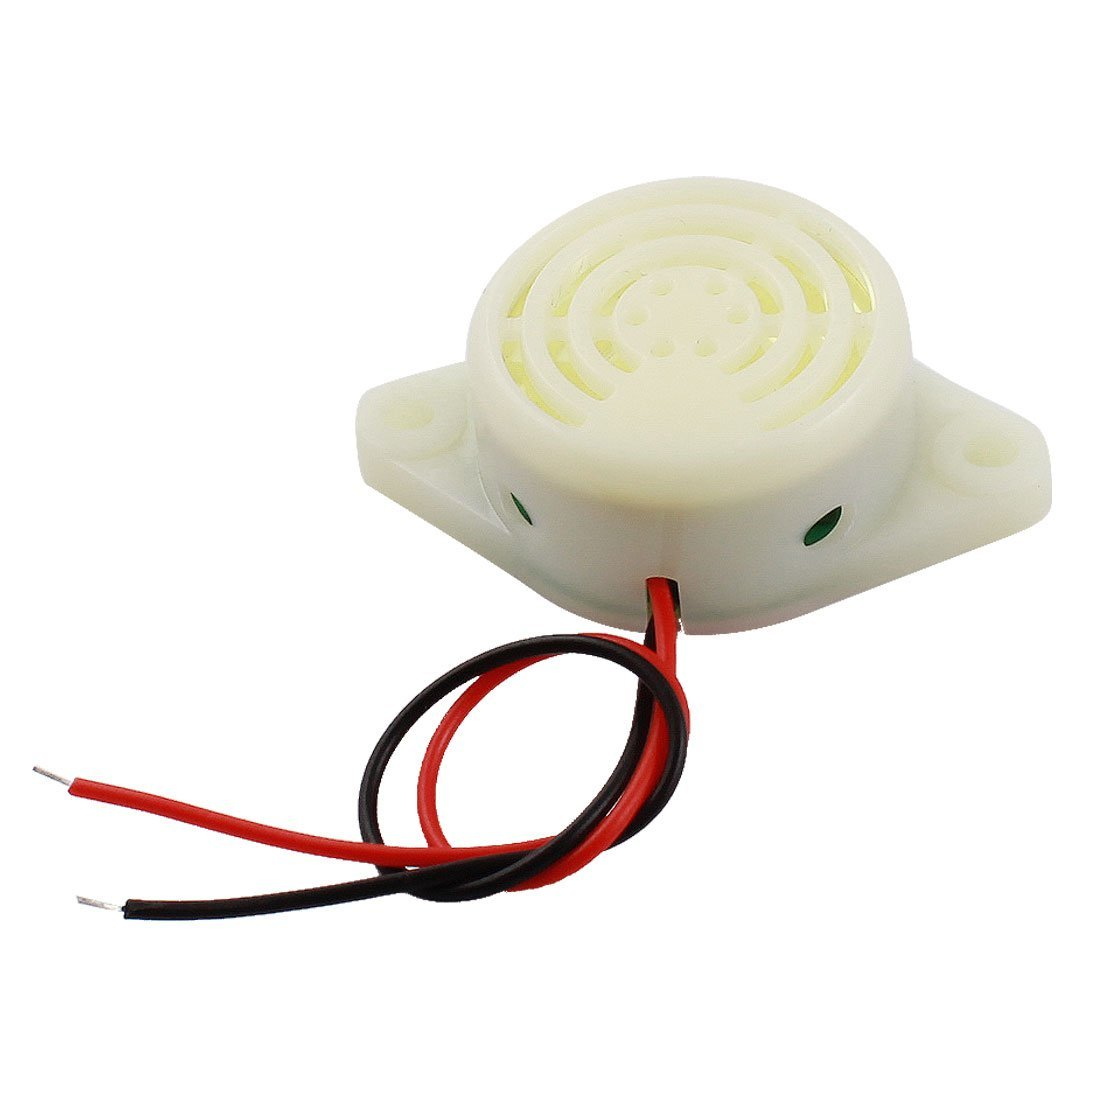 uxcell DC 3-24V 30mA Industrial Continuous Sound Electronic Buzzer 80dB a12051700ux0108